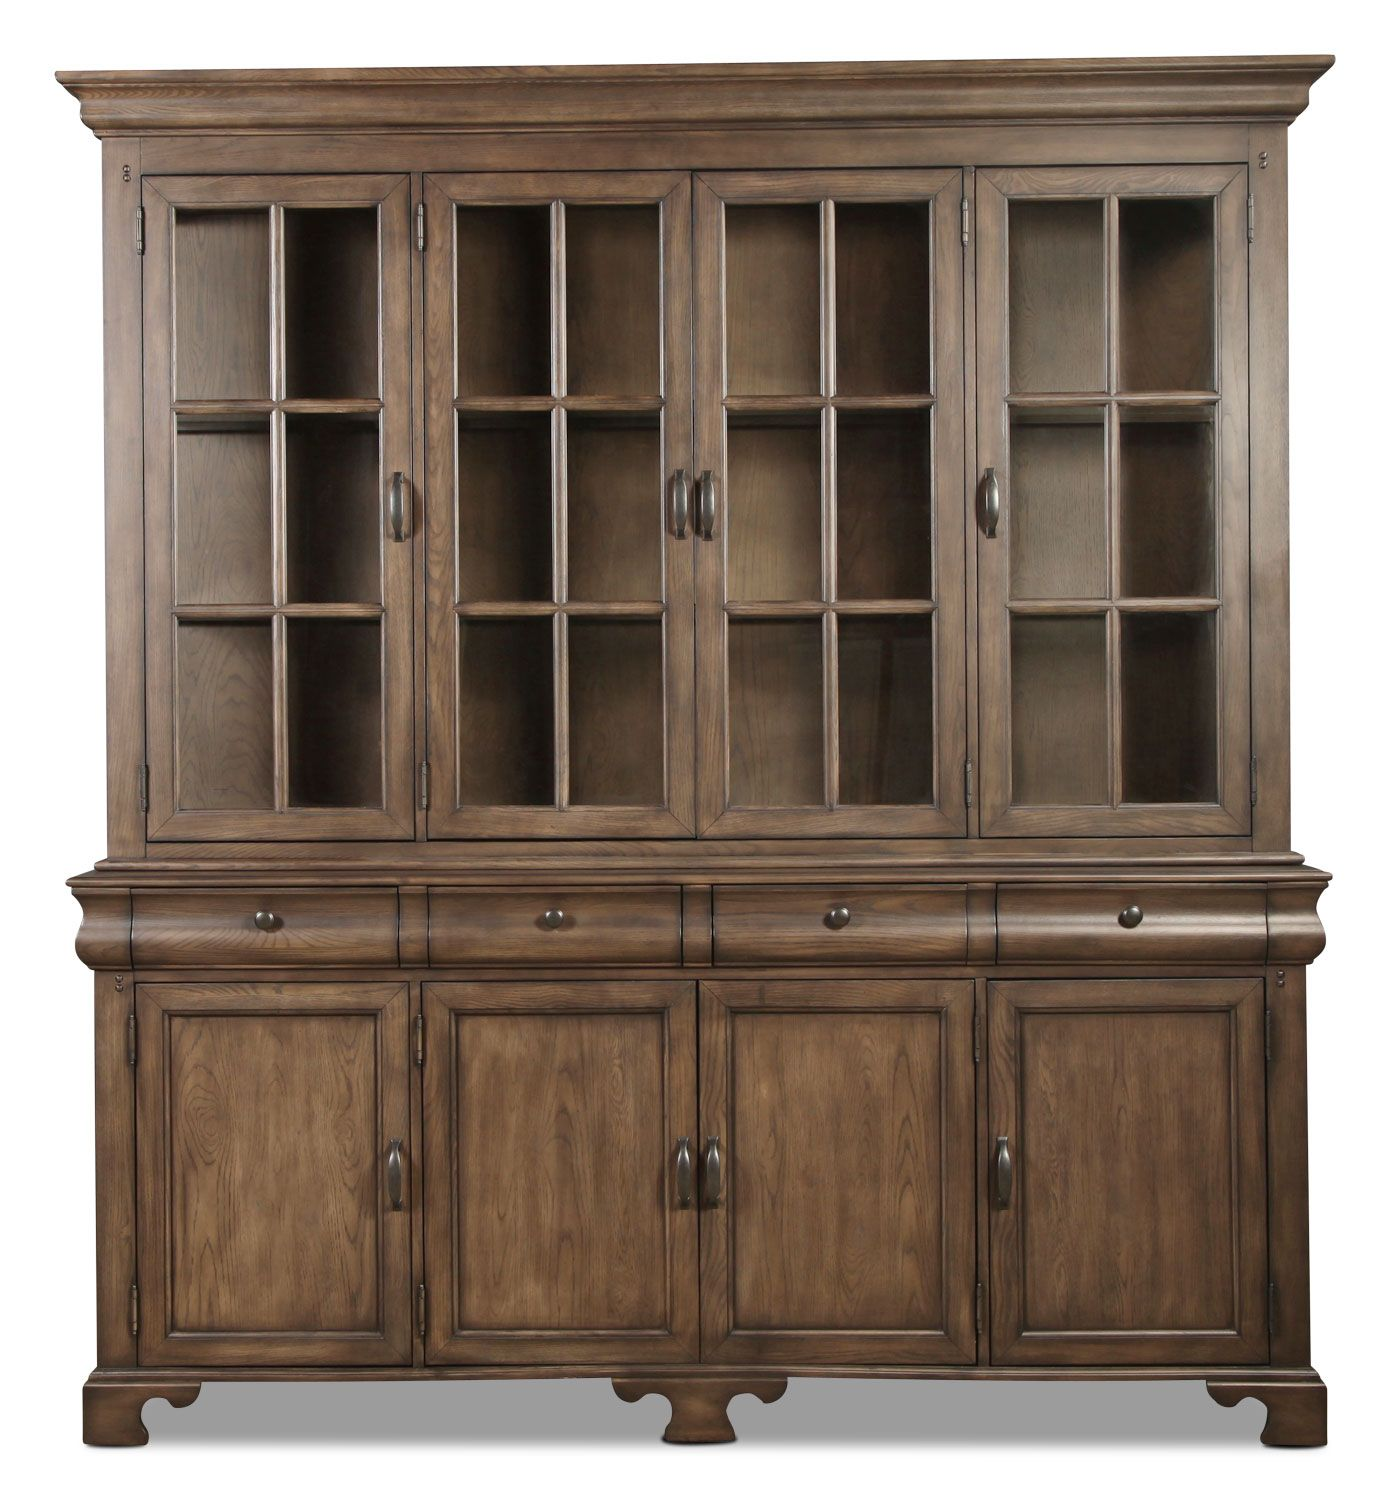 Natural Oak Finish Formal Contemporary Buffet w/Optional Hutch